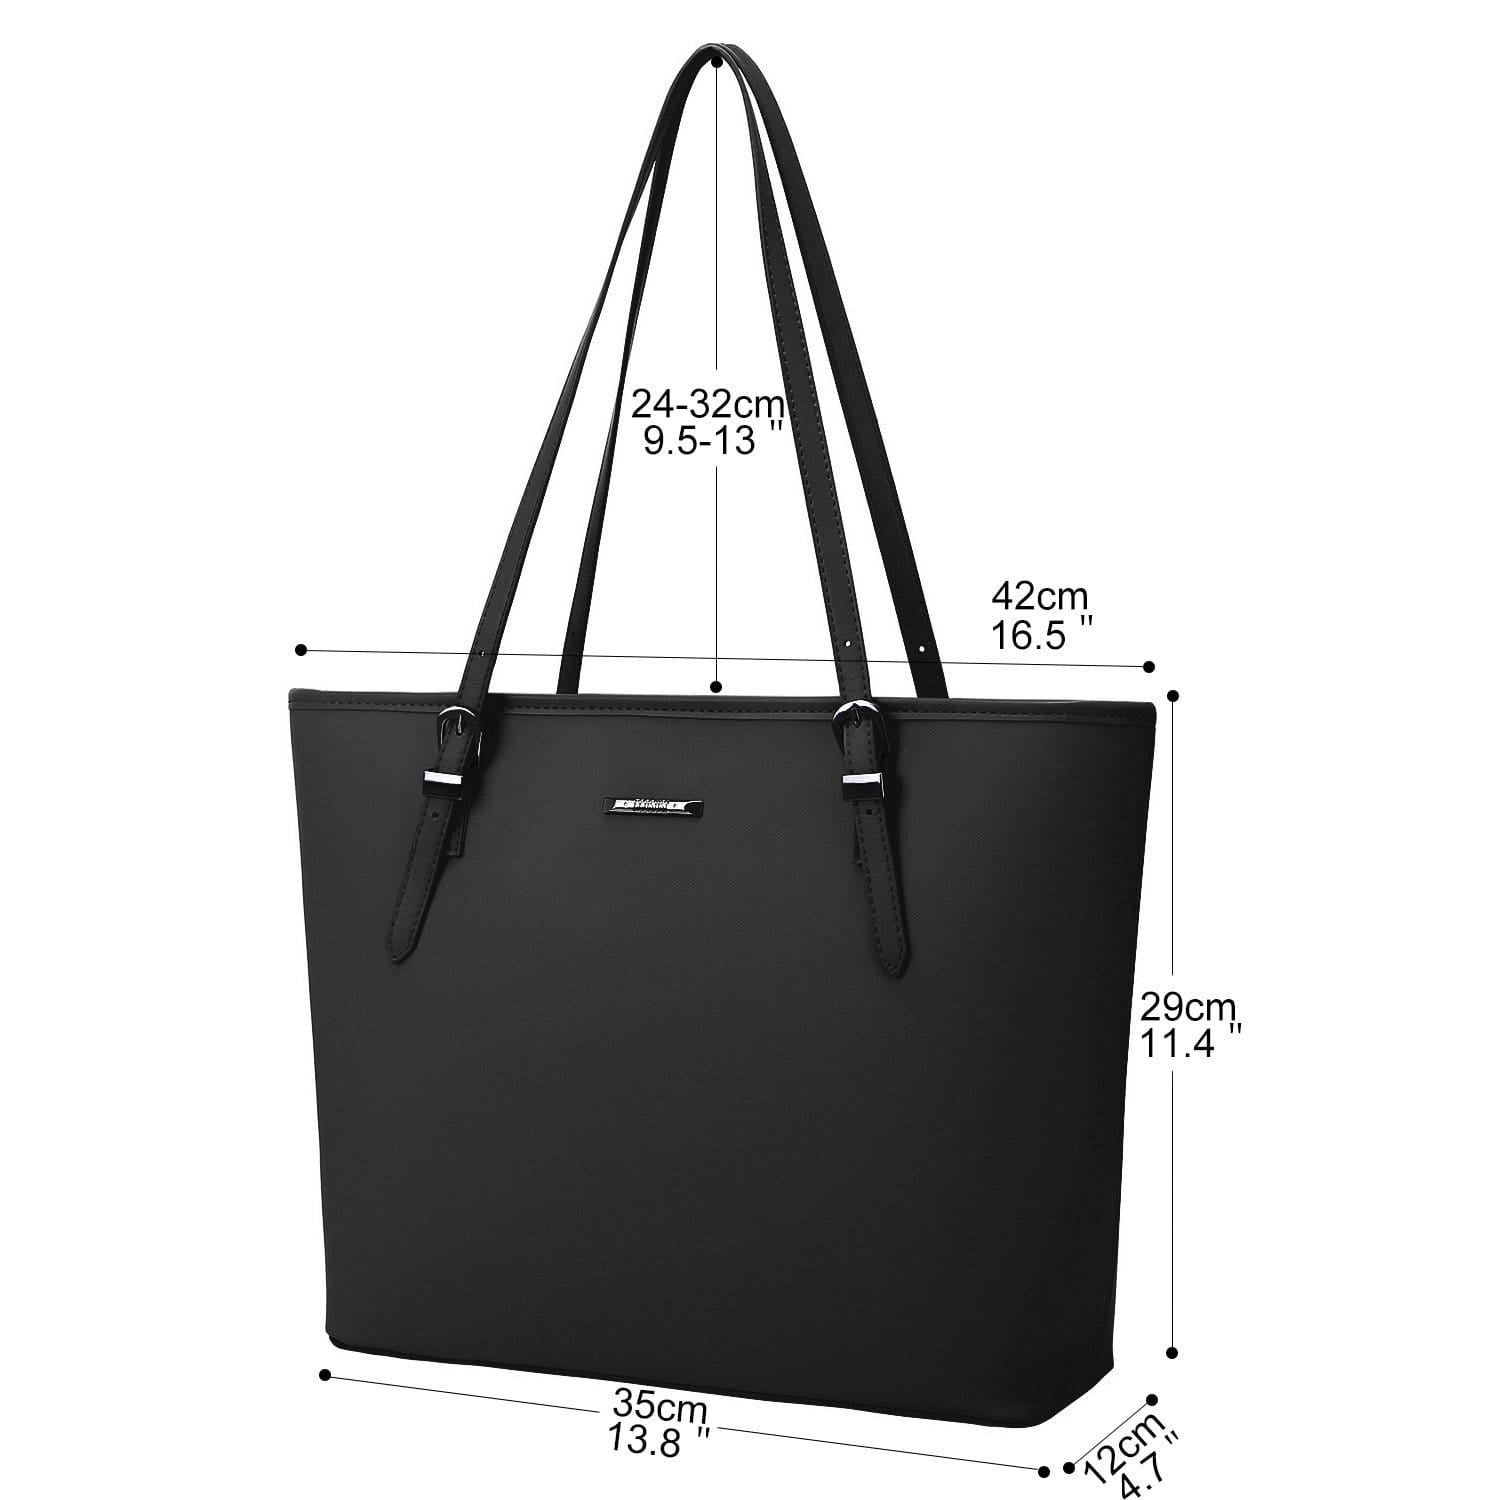 7ad7e1baa2ce Women Top Handle Satchel Handbags Shoulder Bag PU Leather Purse Tote  Shoulder Bag